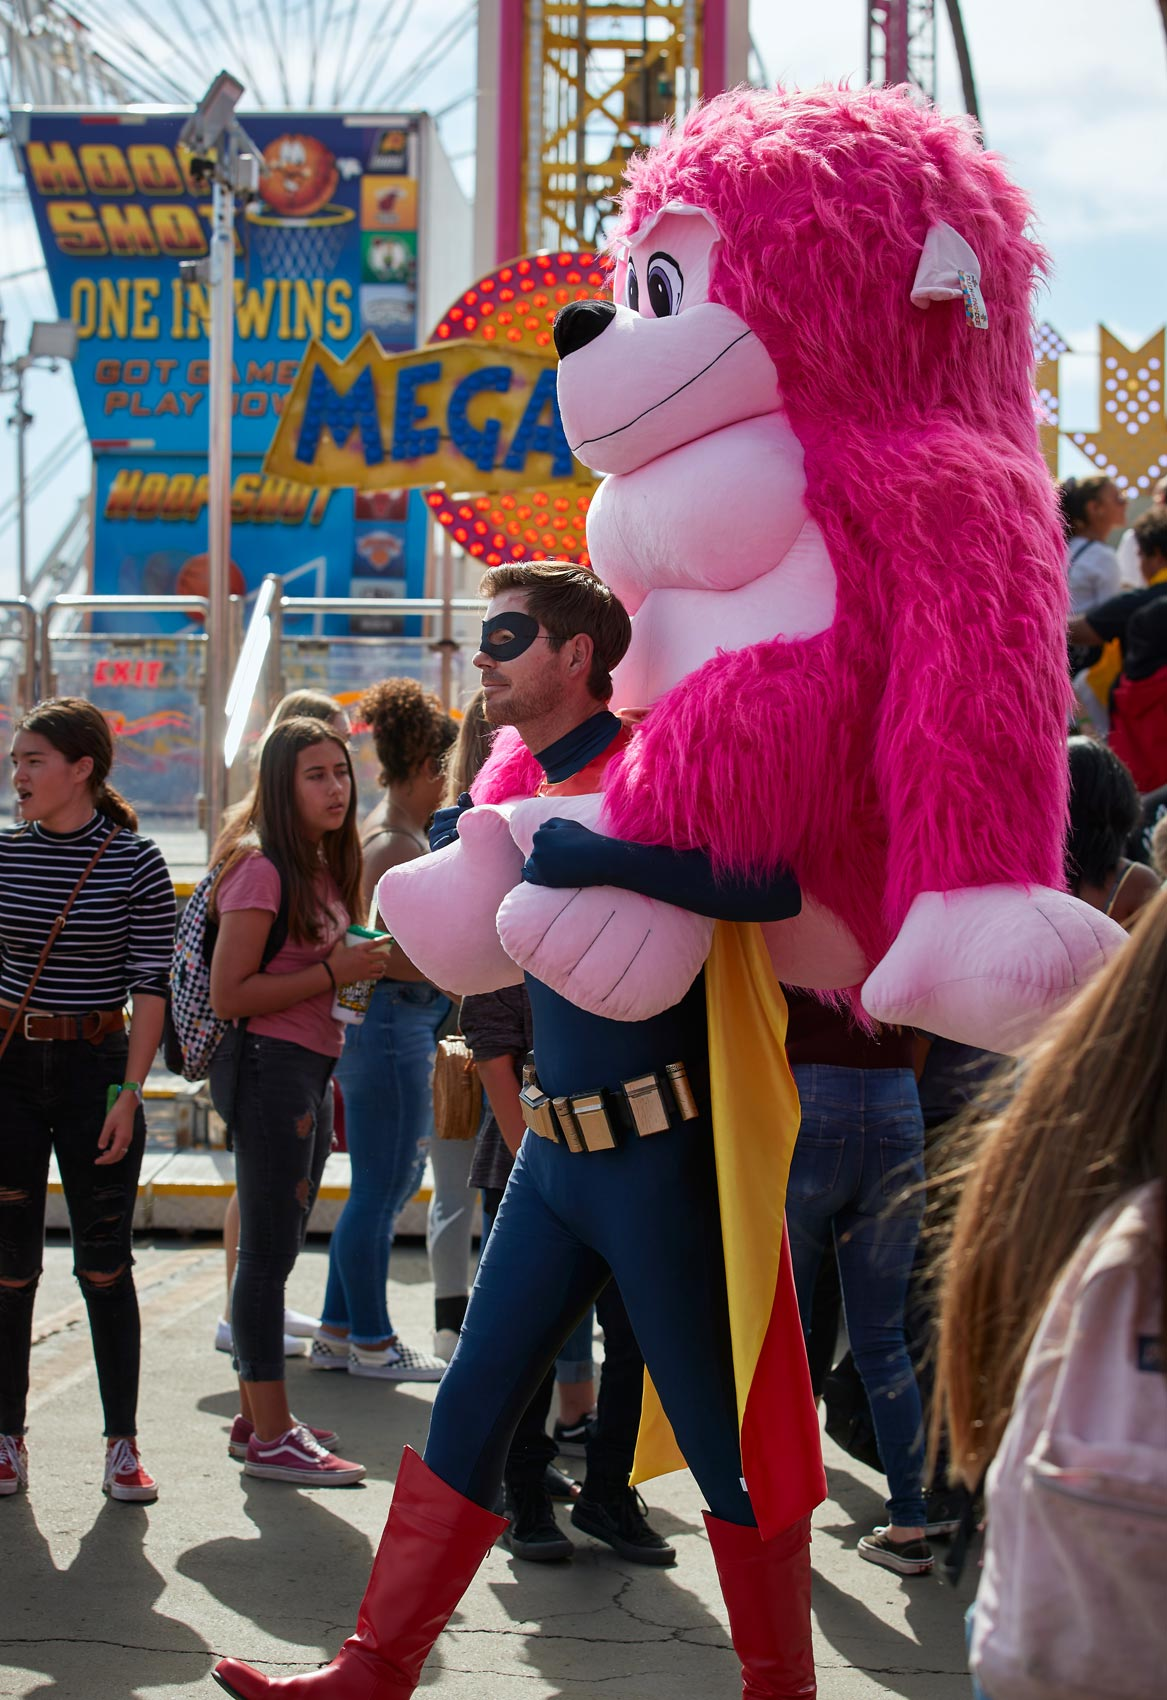 Superhero in Crowd with Pink Gorilla